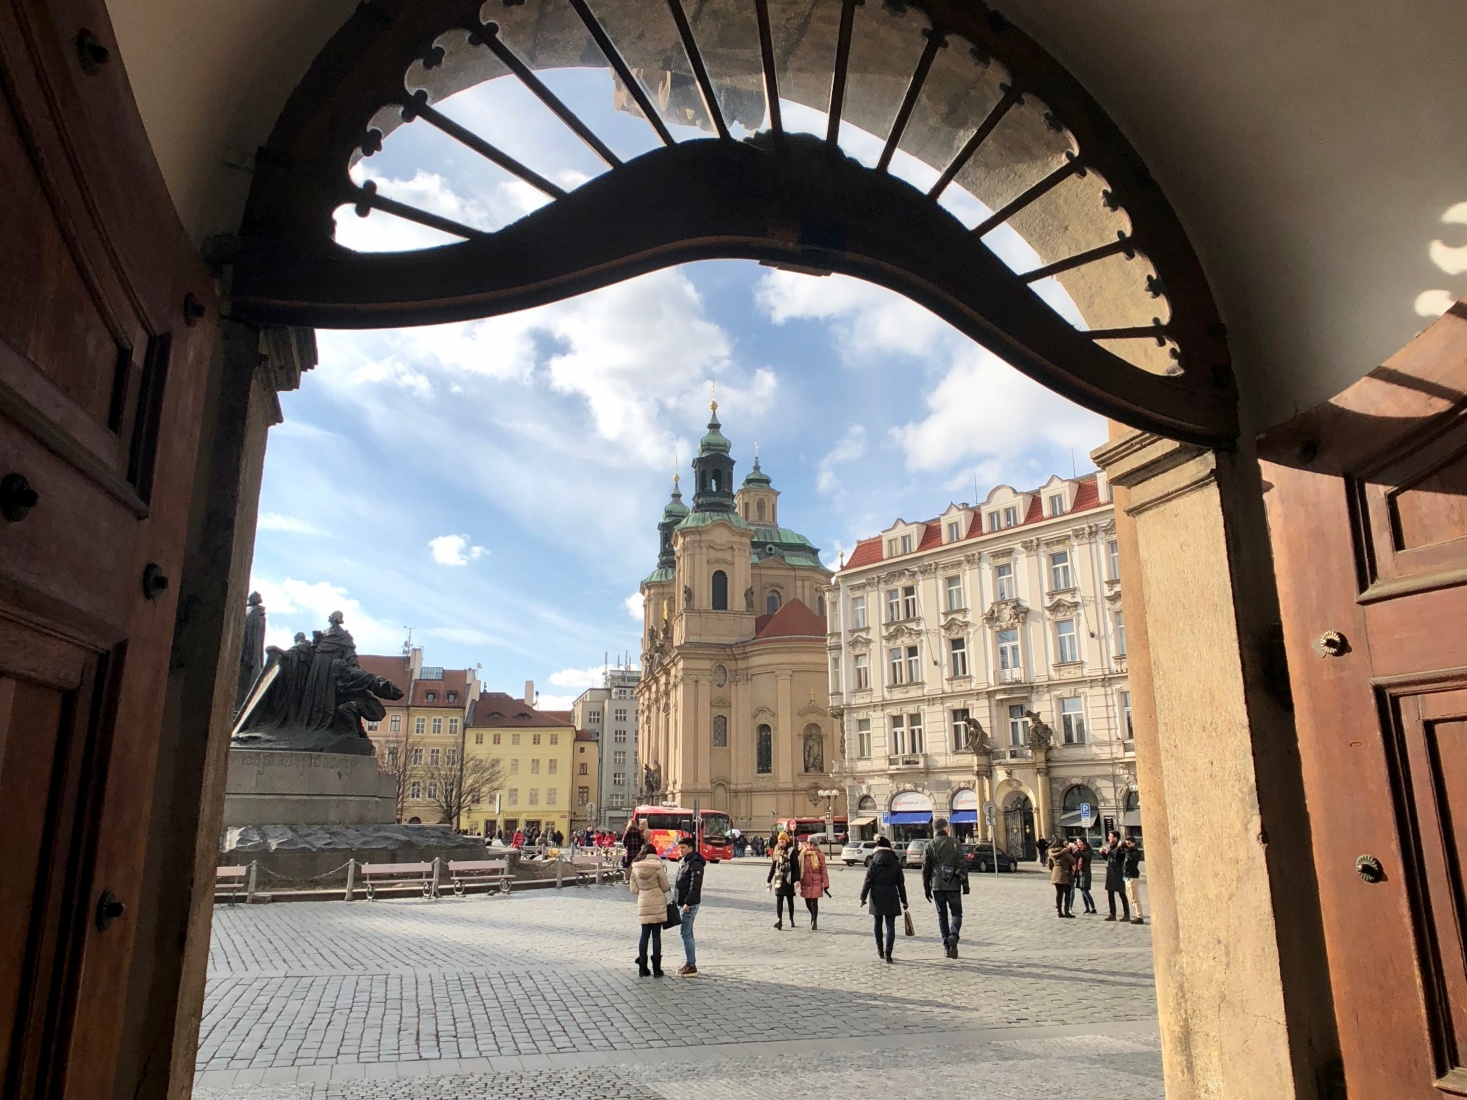 Old Town Square in Prague, with Baroque Church of St. Nicholas surrounded by Neo-Classical and other architecture.